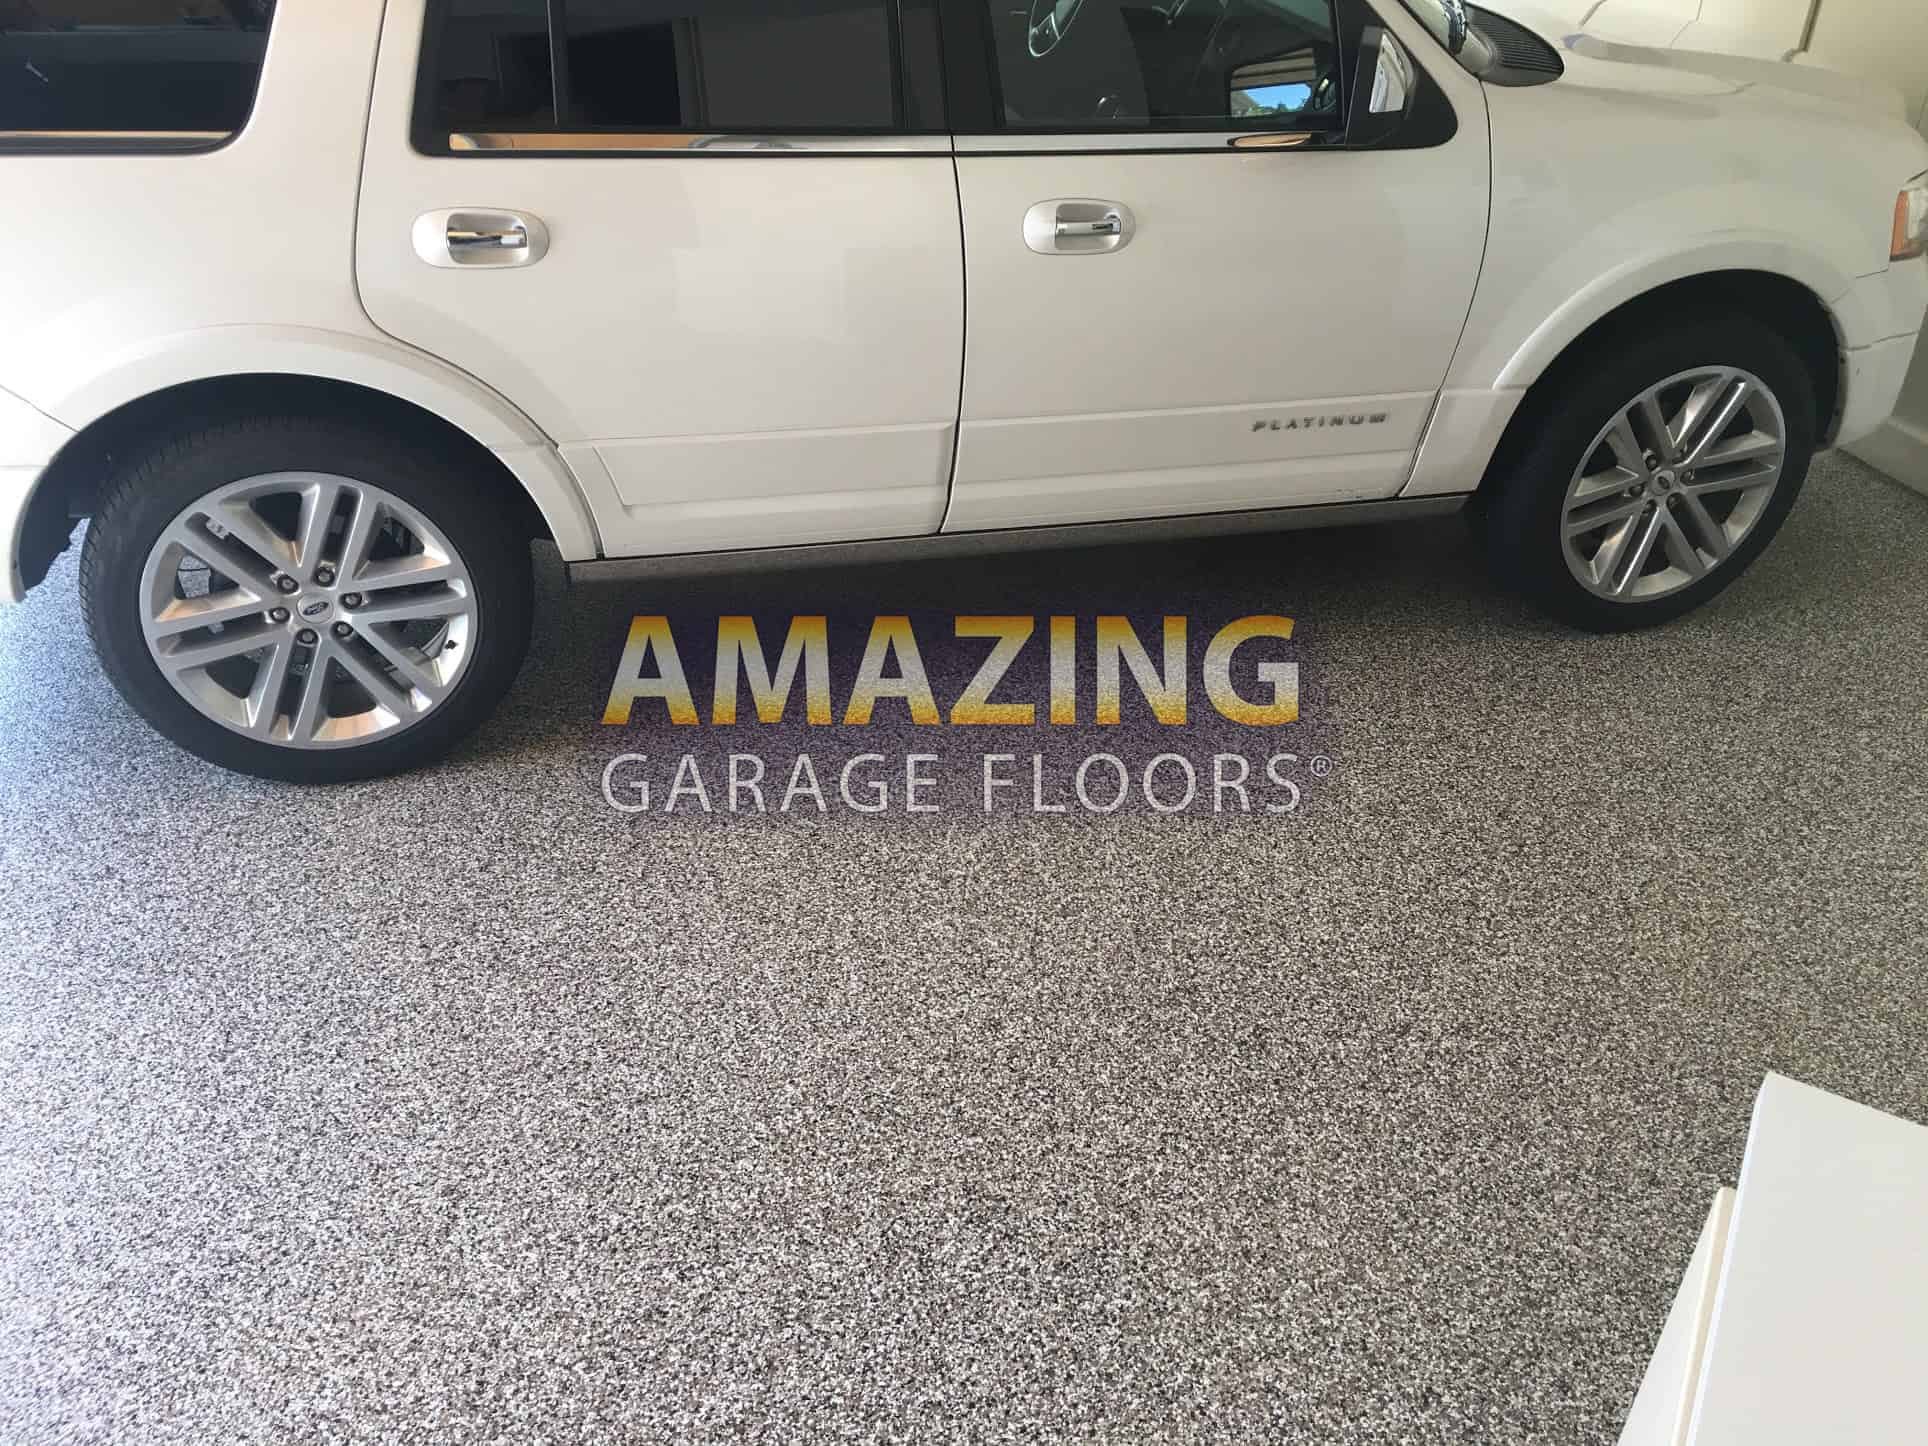 Amazing Garage Floors SUV